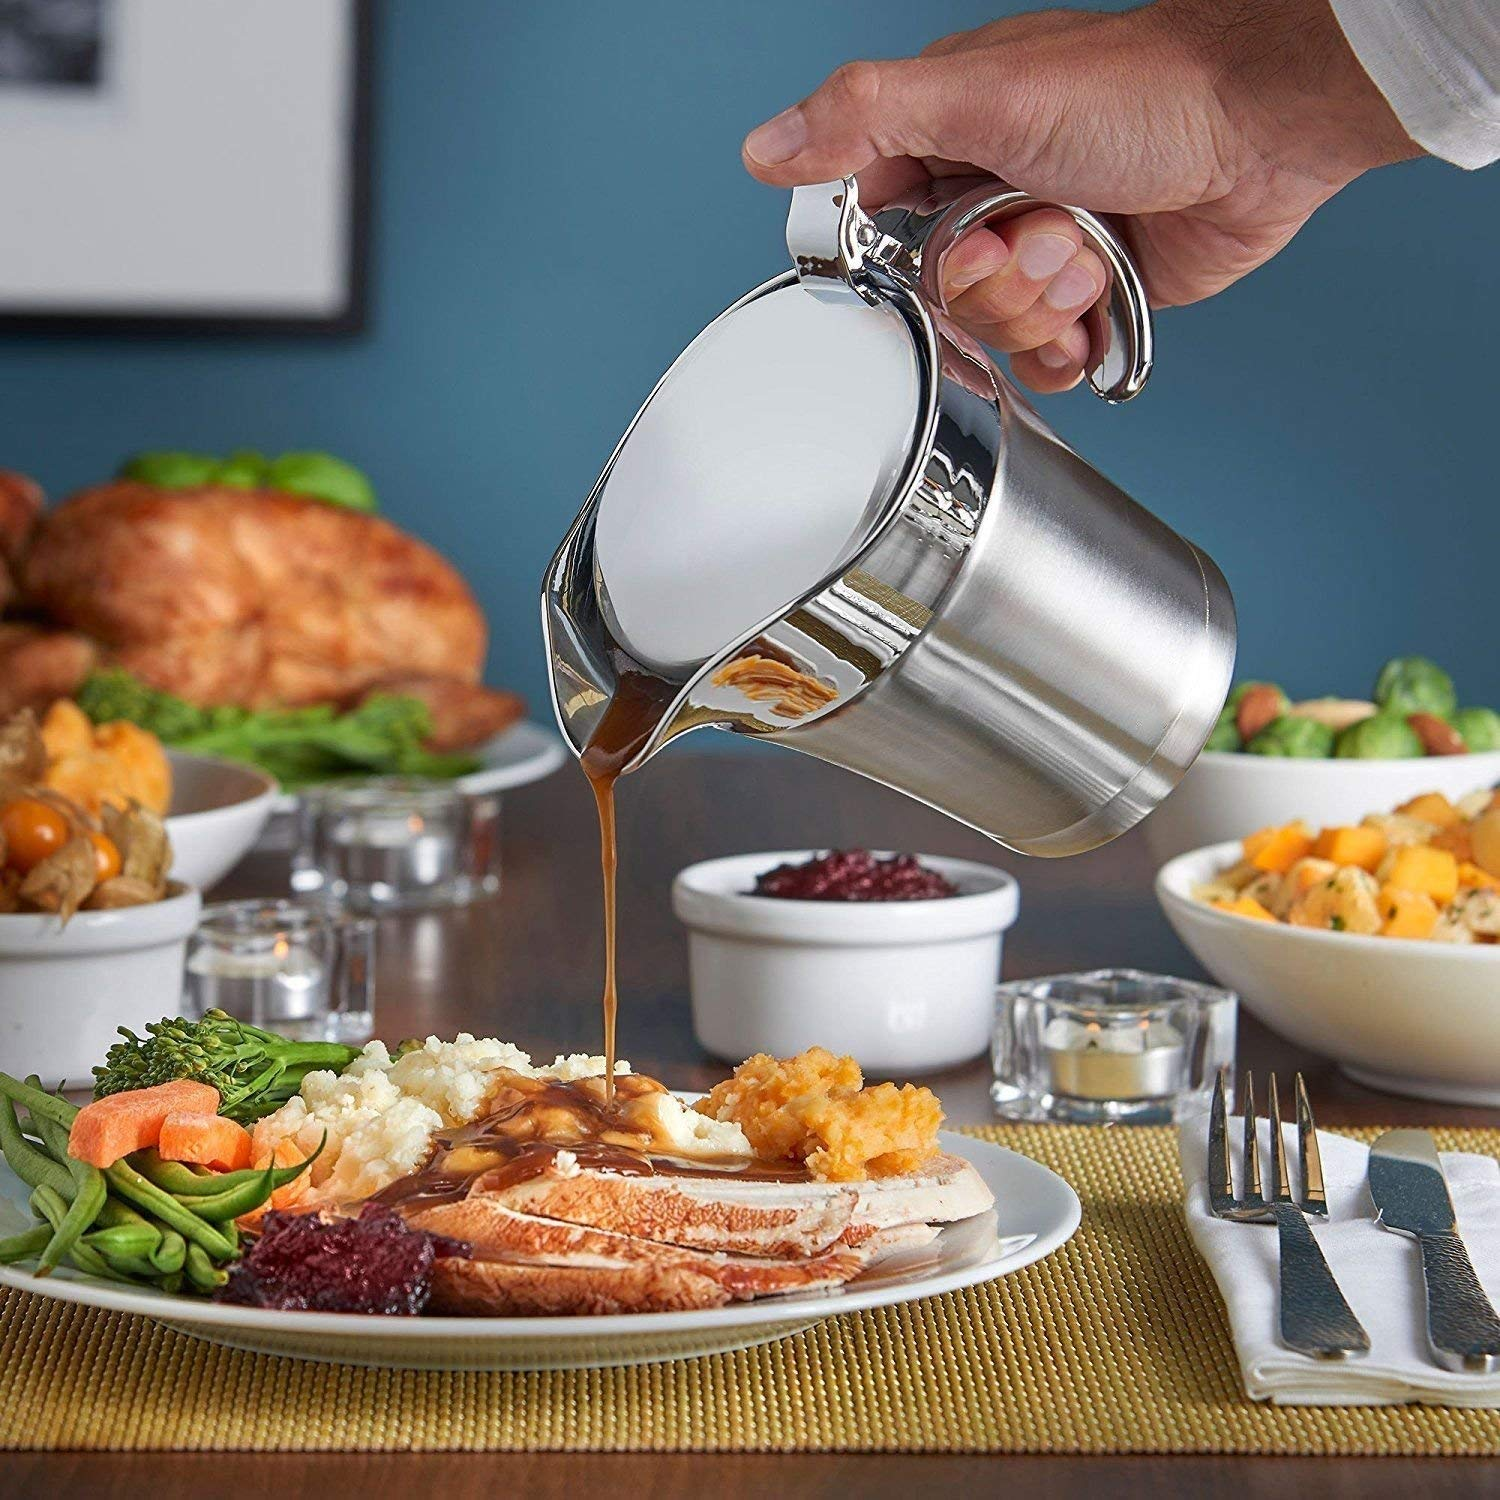 DOUBLE WALL INSULATED STAINLESS STEEL GRAVY BOAT 500ML SAUCE JUG LID KITCHEN NEW DP